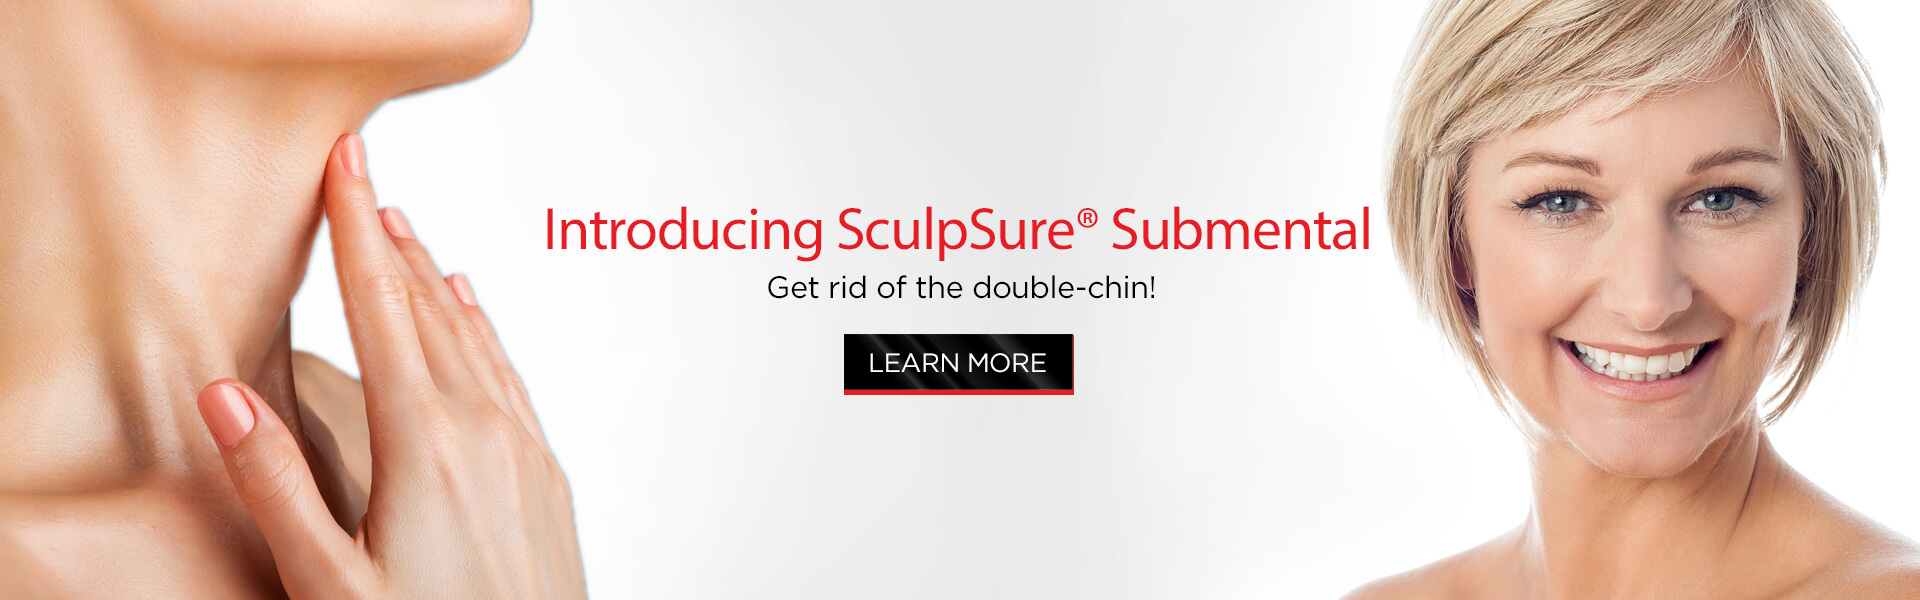 sculpsure-submental